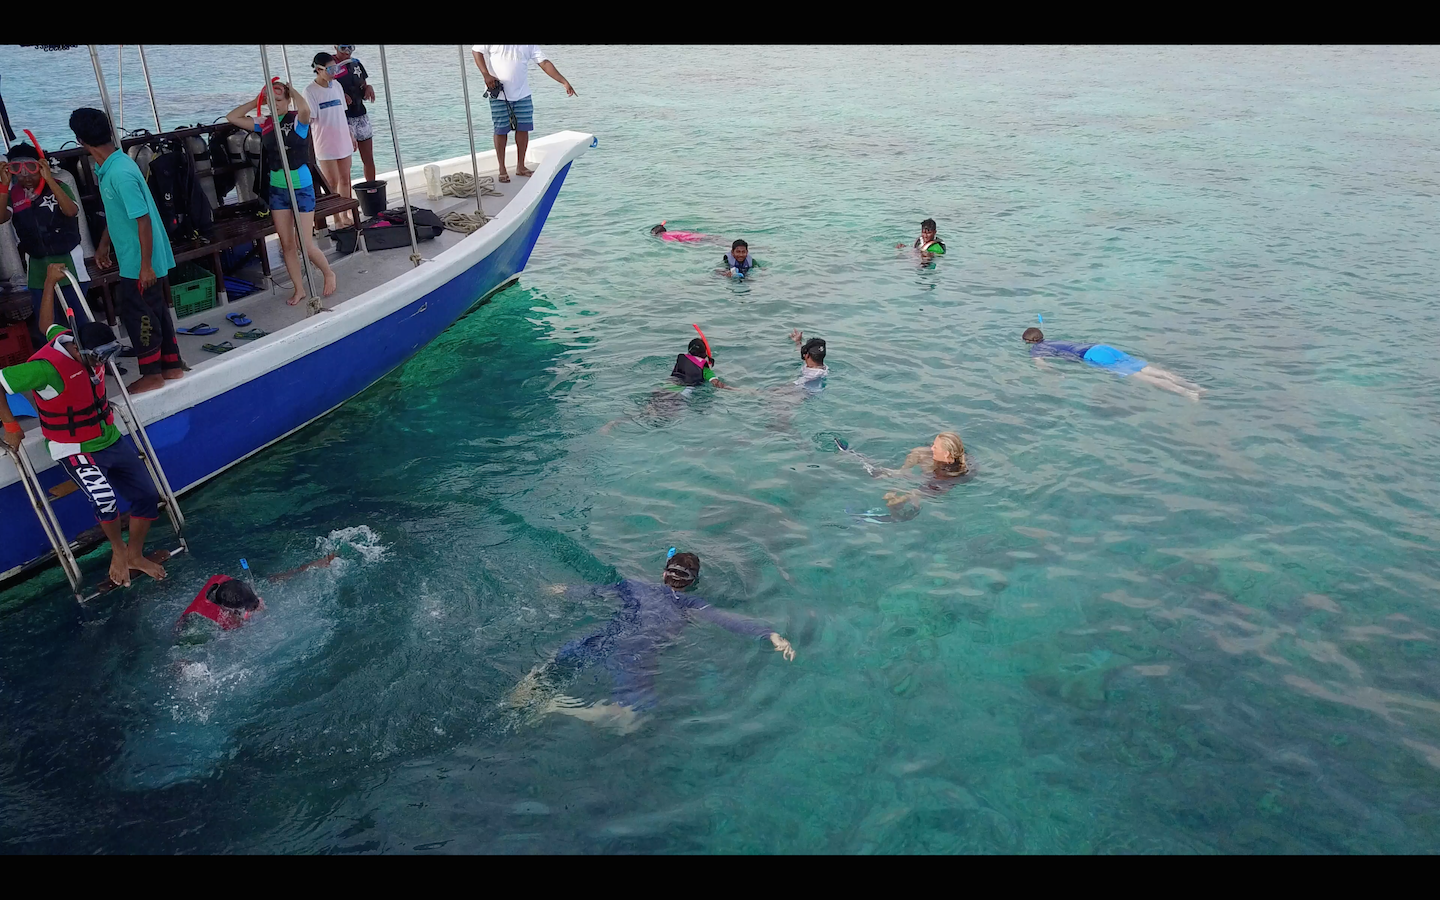 Iain and other Parley Ocean School attendees took more than 60 Maldivian school kids out on a reef to snorkel -- some had never snorkeled before.